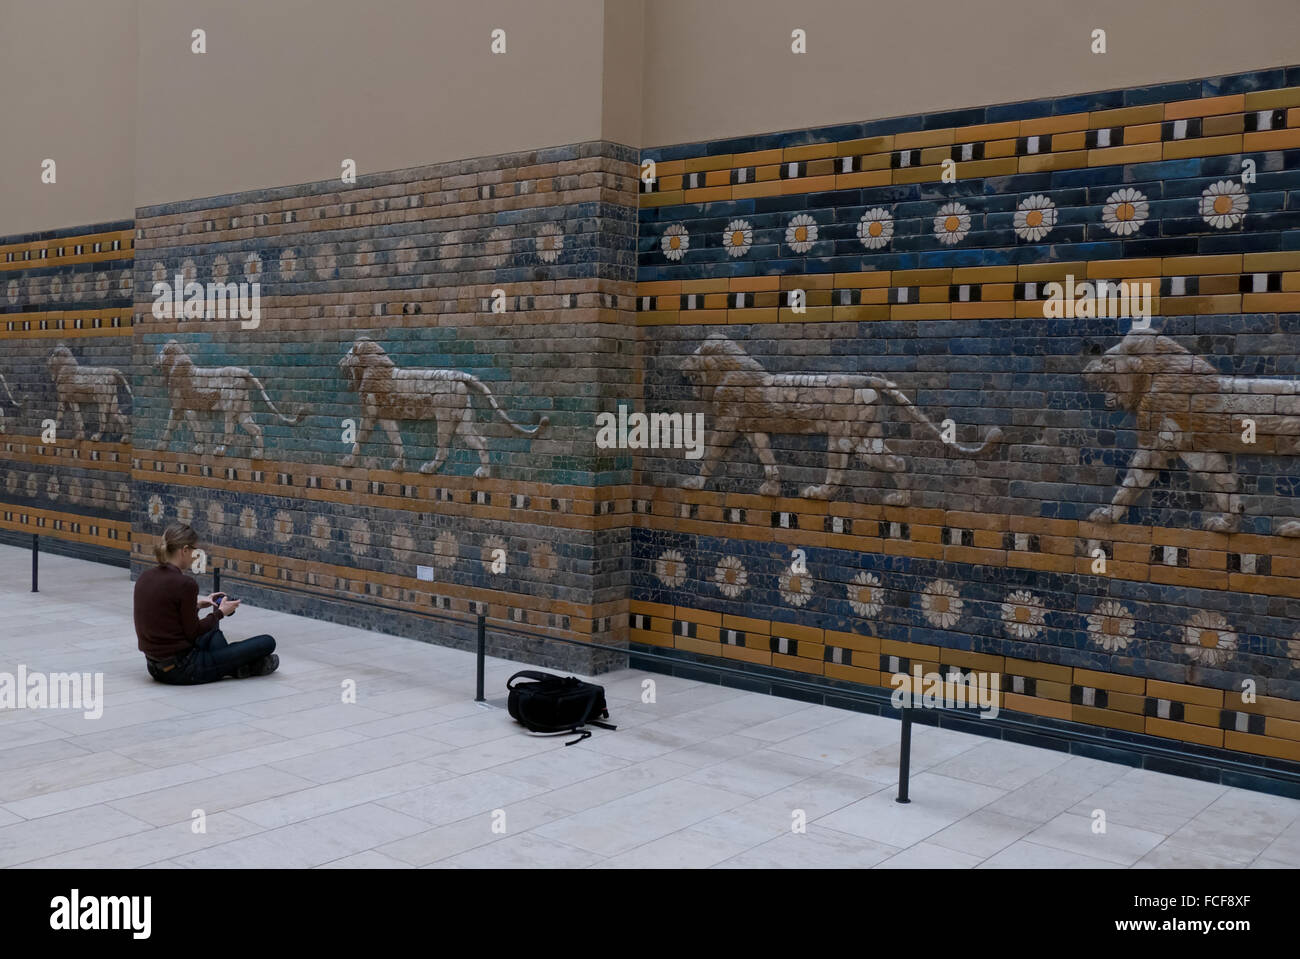 Berlin, German city, Germany, Europe. Reconstruction of the Processional Way of Babylon at the Pergamon Museum, Stock Photo